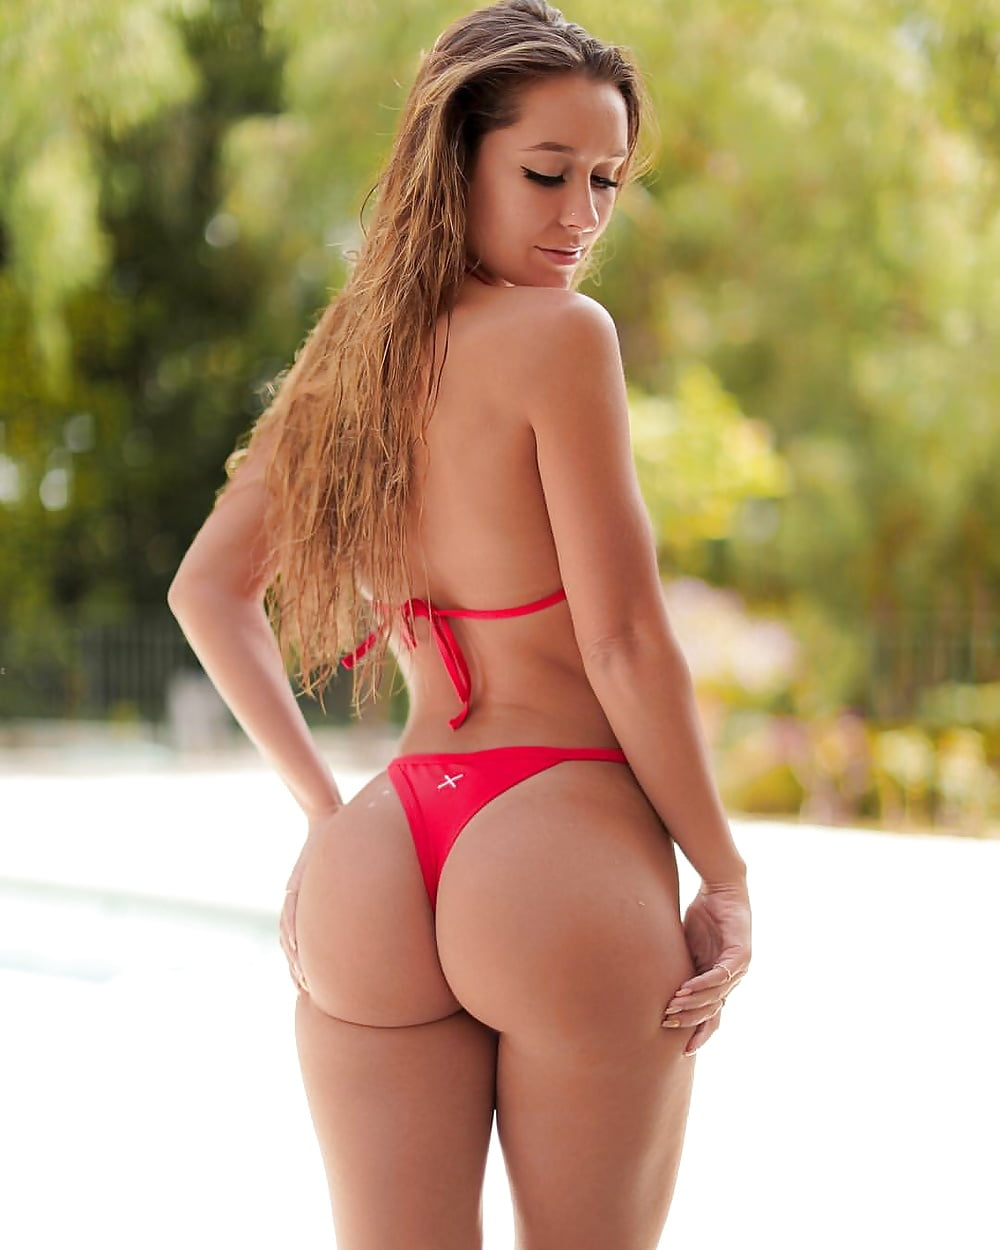 New Unbelievable Photo Of Leanne Crow Hot Pink String Bikini